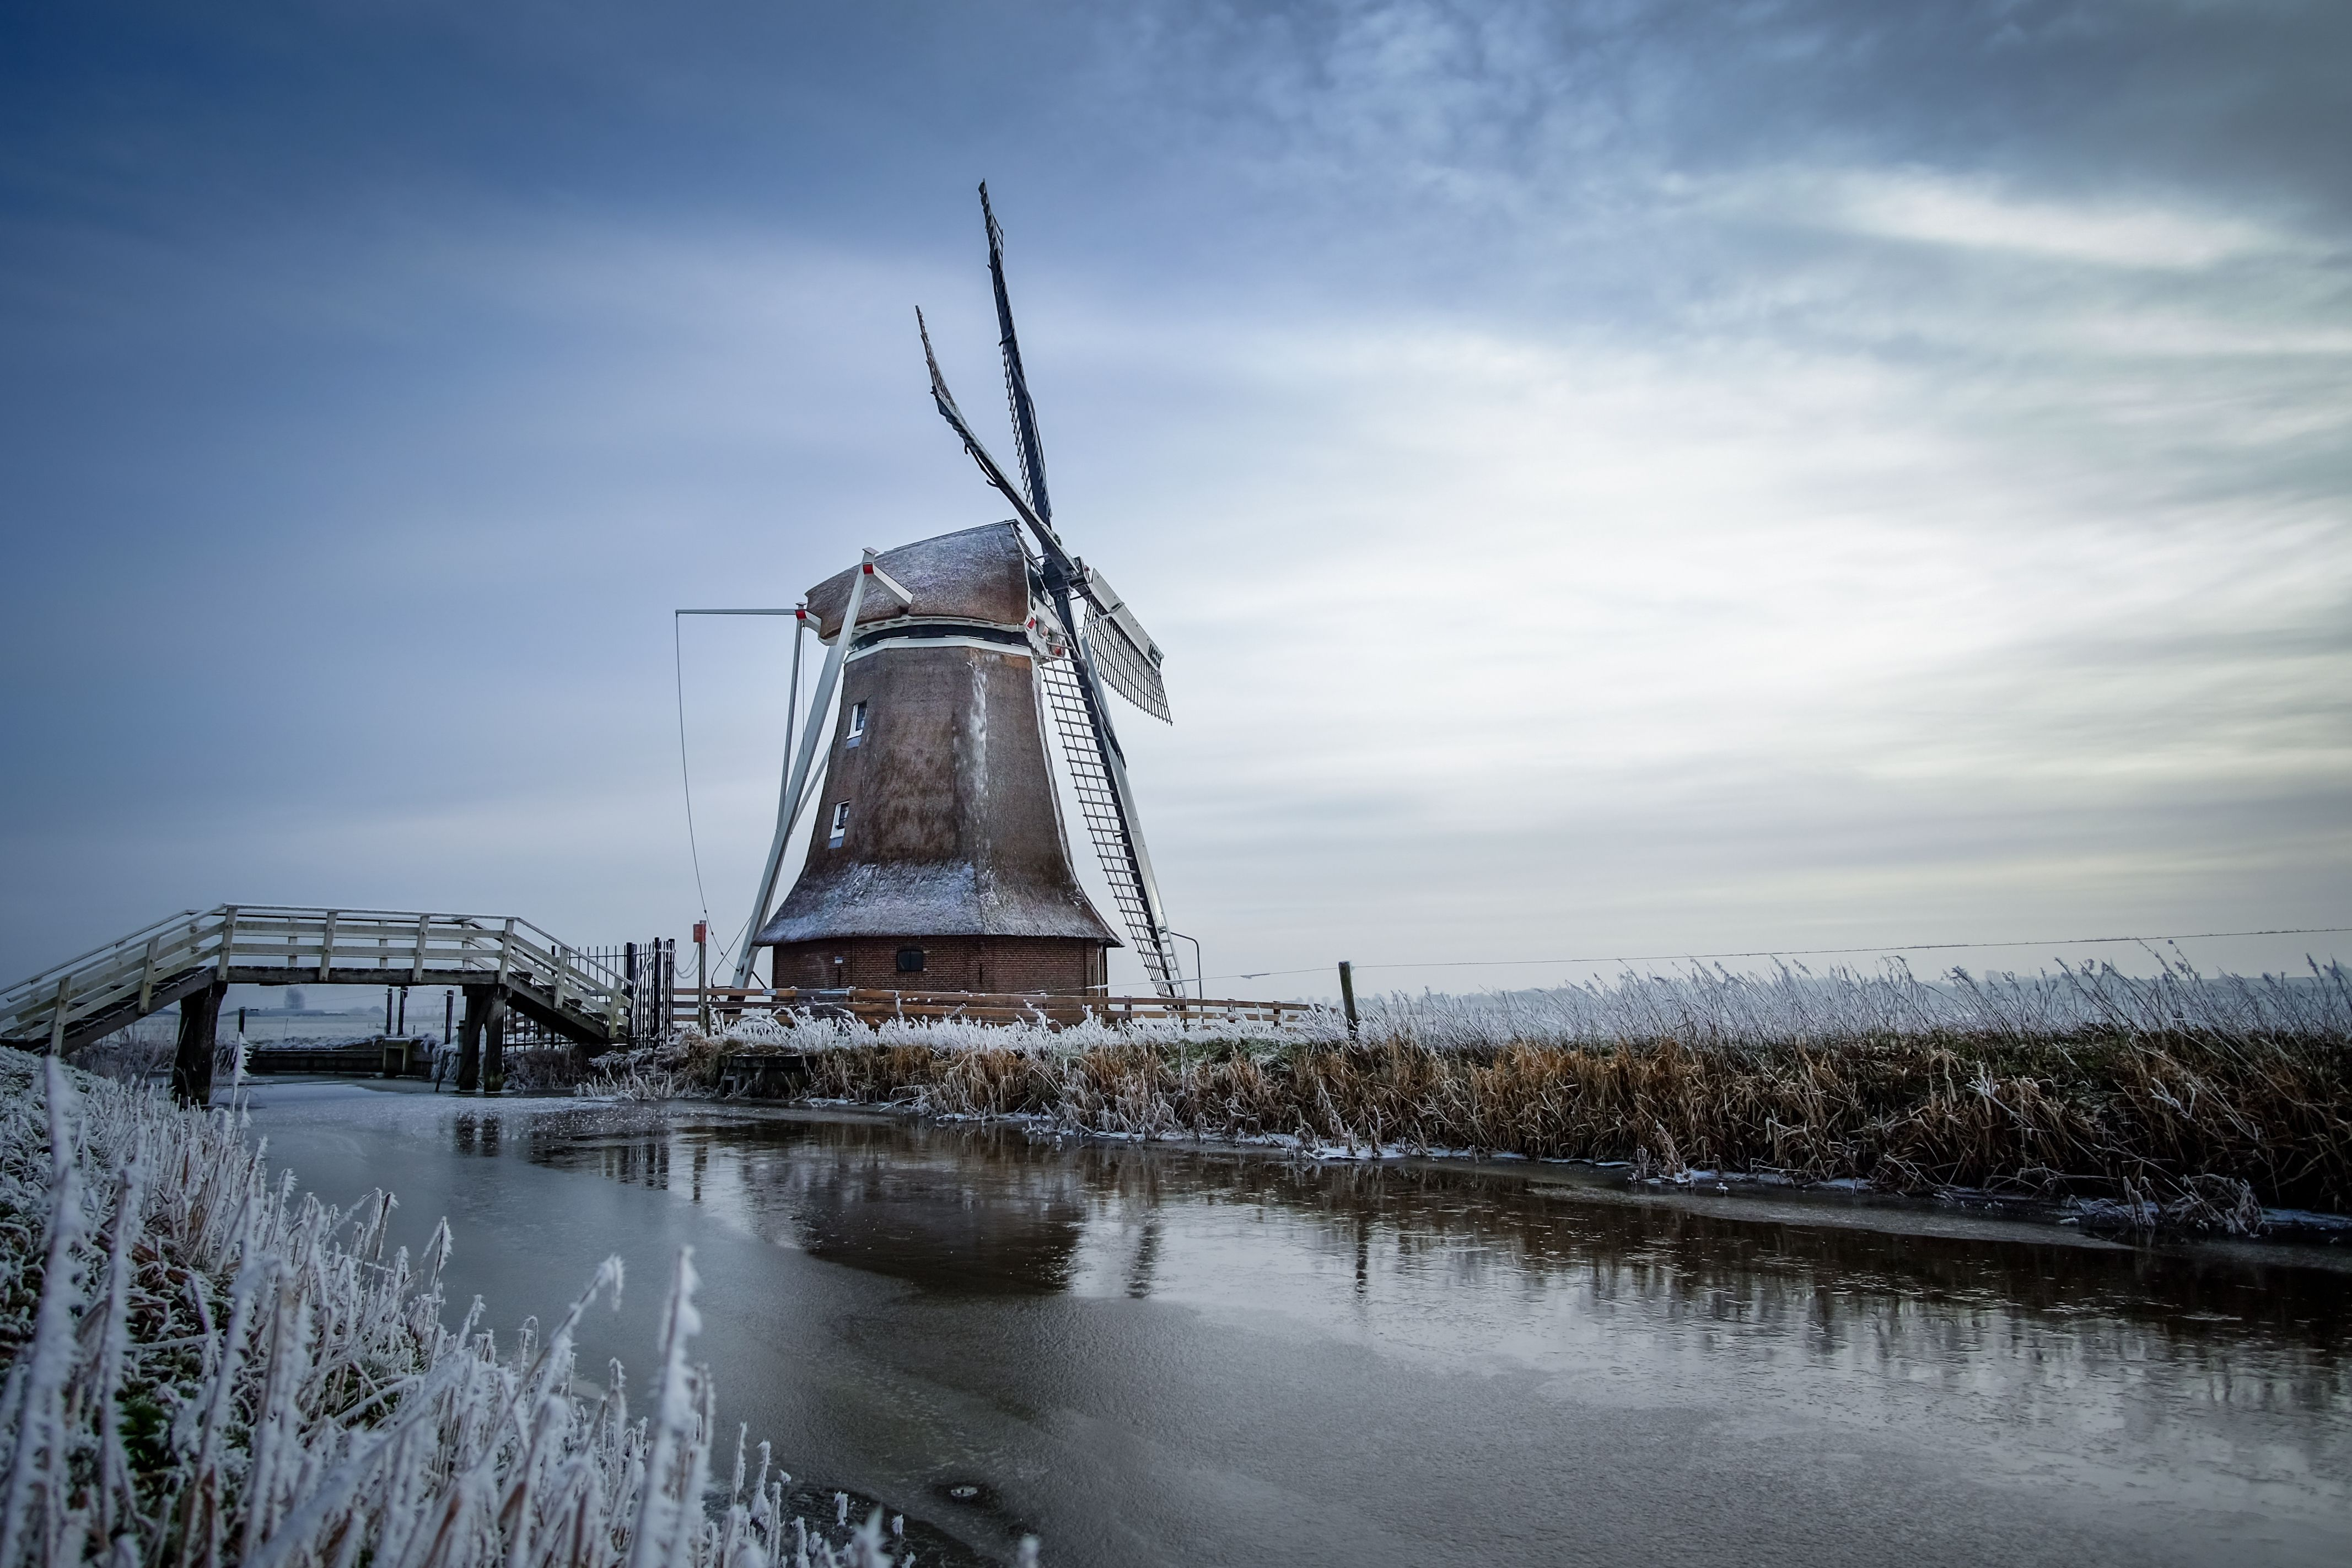 Old windmill in Friesland, the Netherlands